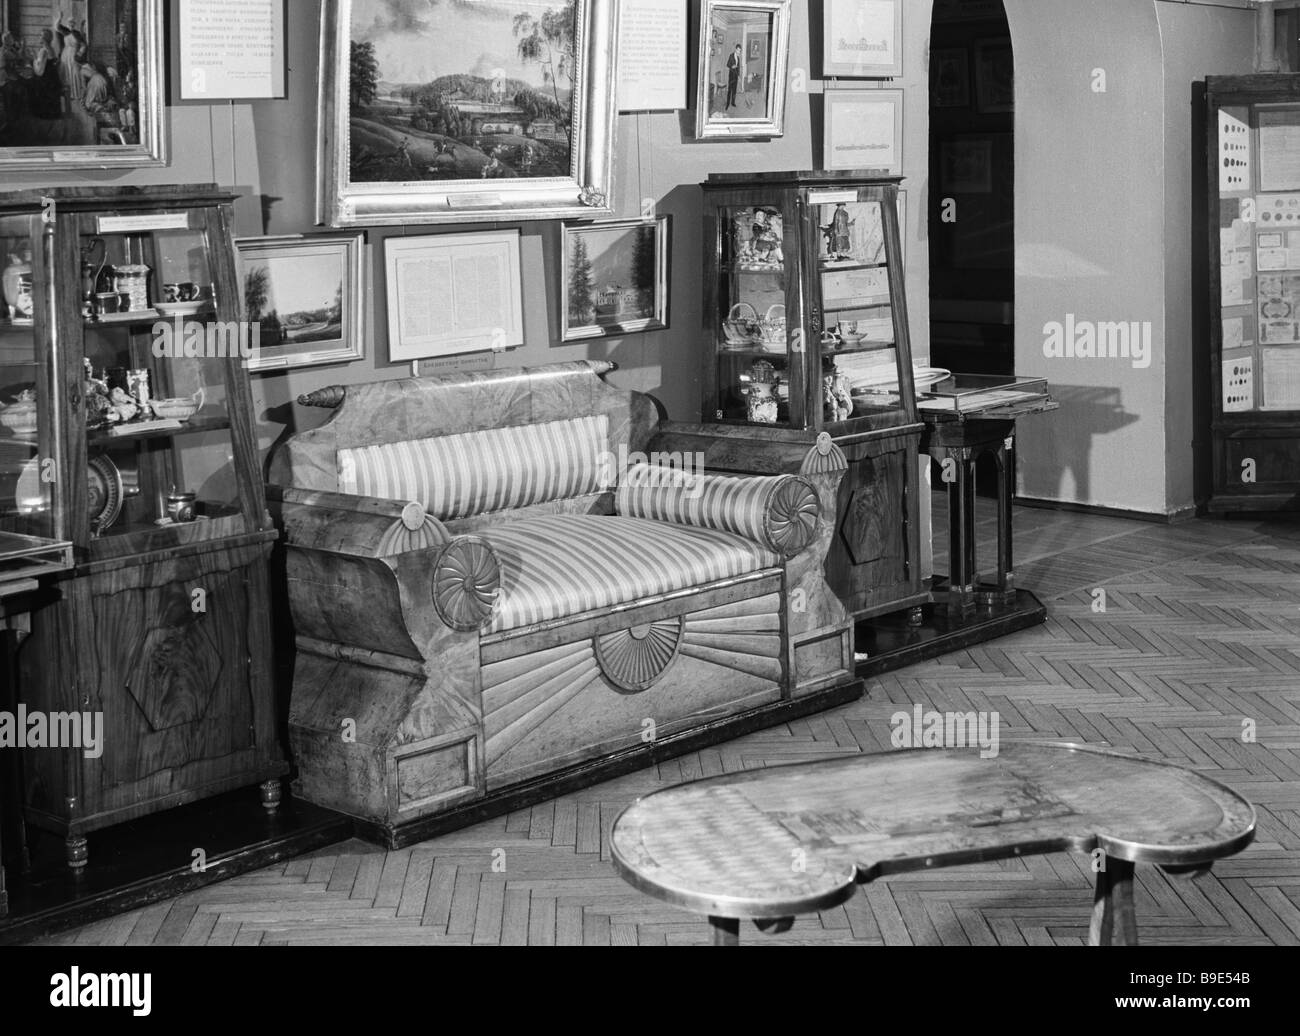 A sofa dated the 1920s from the collection of the History Museum - Stock Image